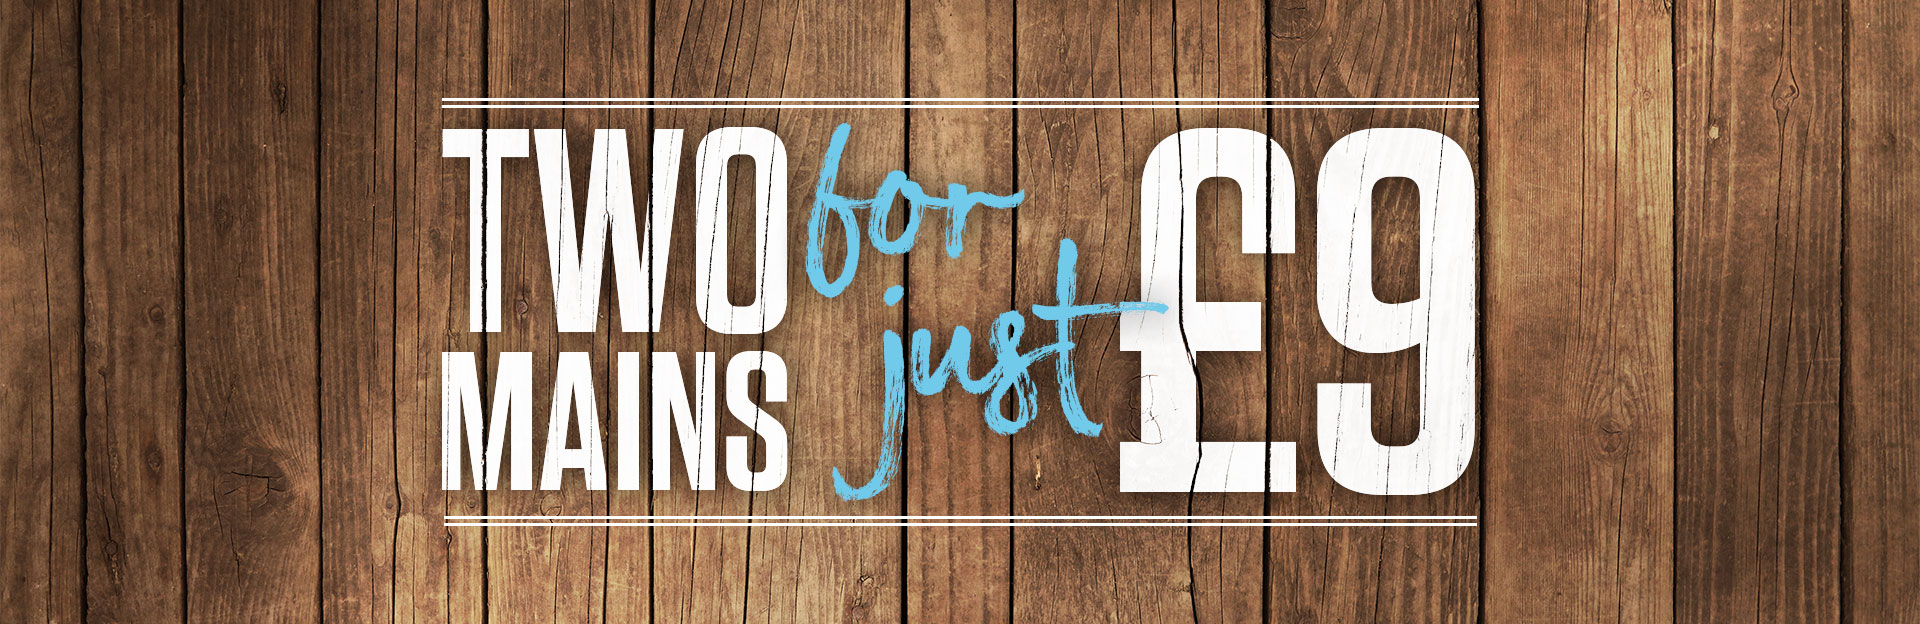 Two Meals Deal at Red Lion